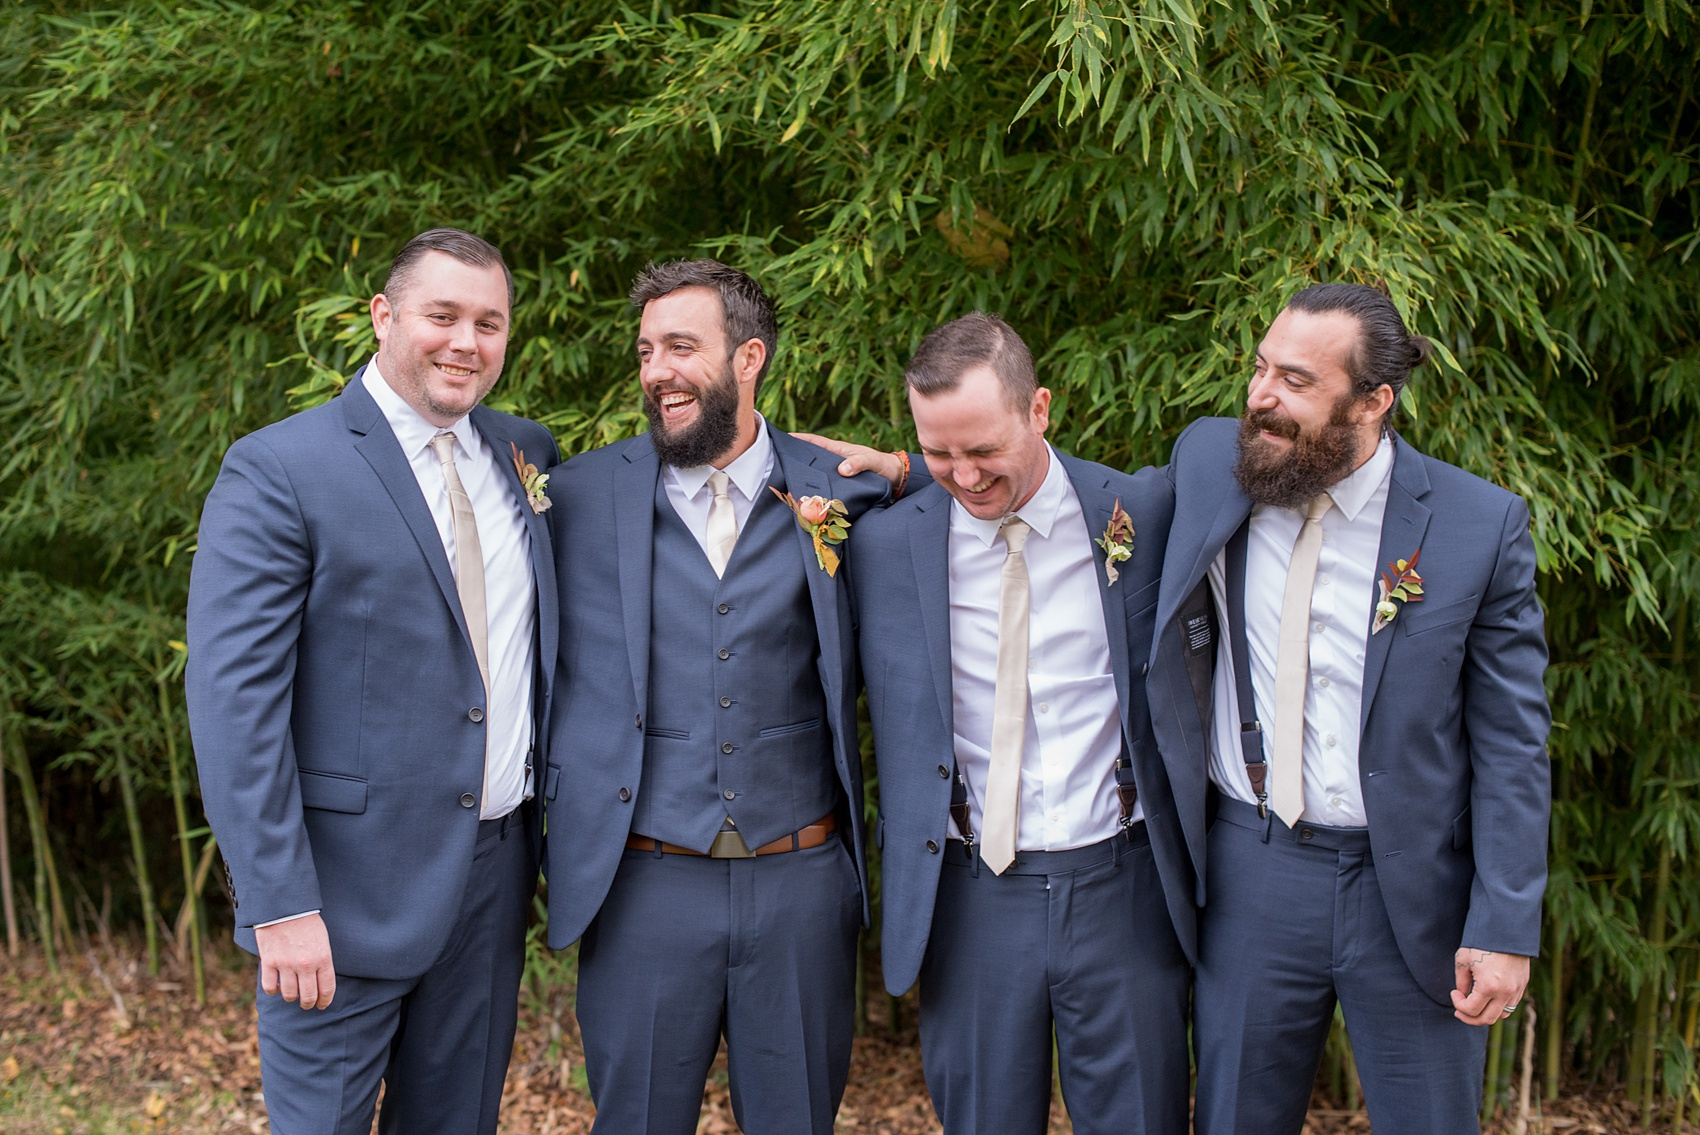 Mikkel Paige Photography photos from a wedding at Leslie-Alford Mims House in North Carolina. Candid picture of the groomsmen in navy blue linen suits for a fall Mad Dash Weddings event.